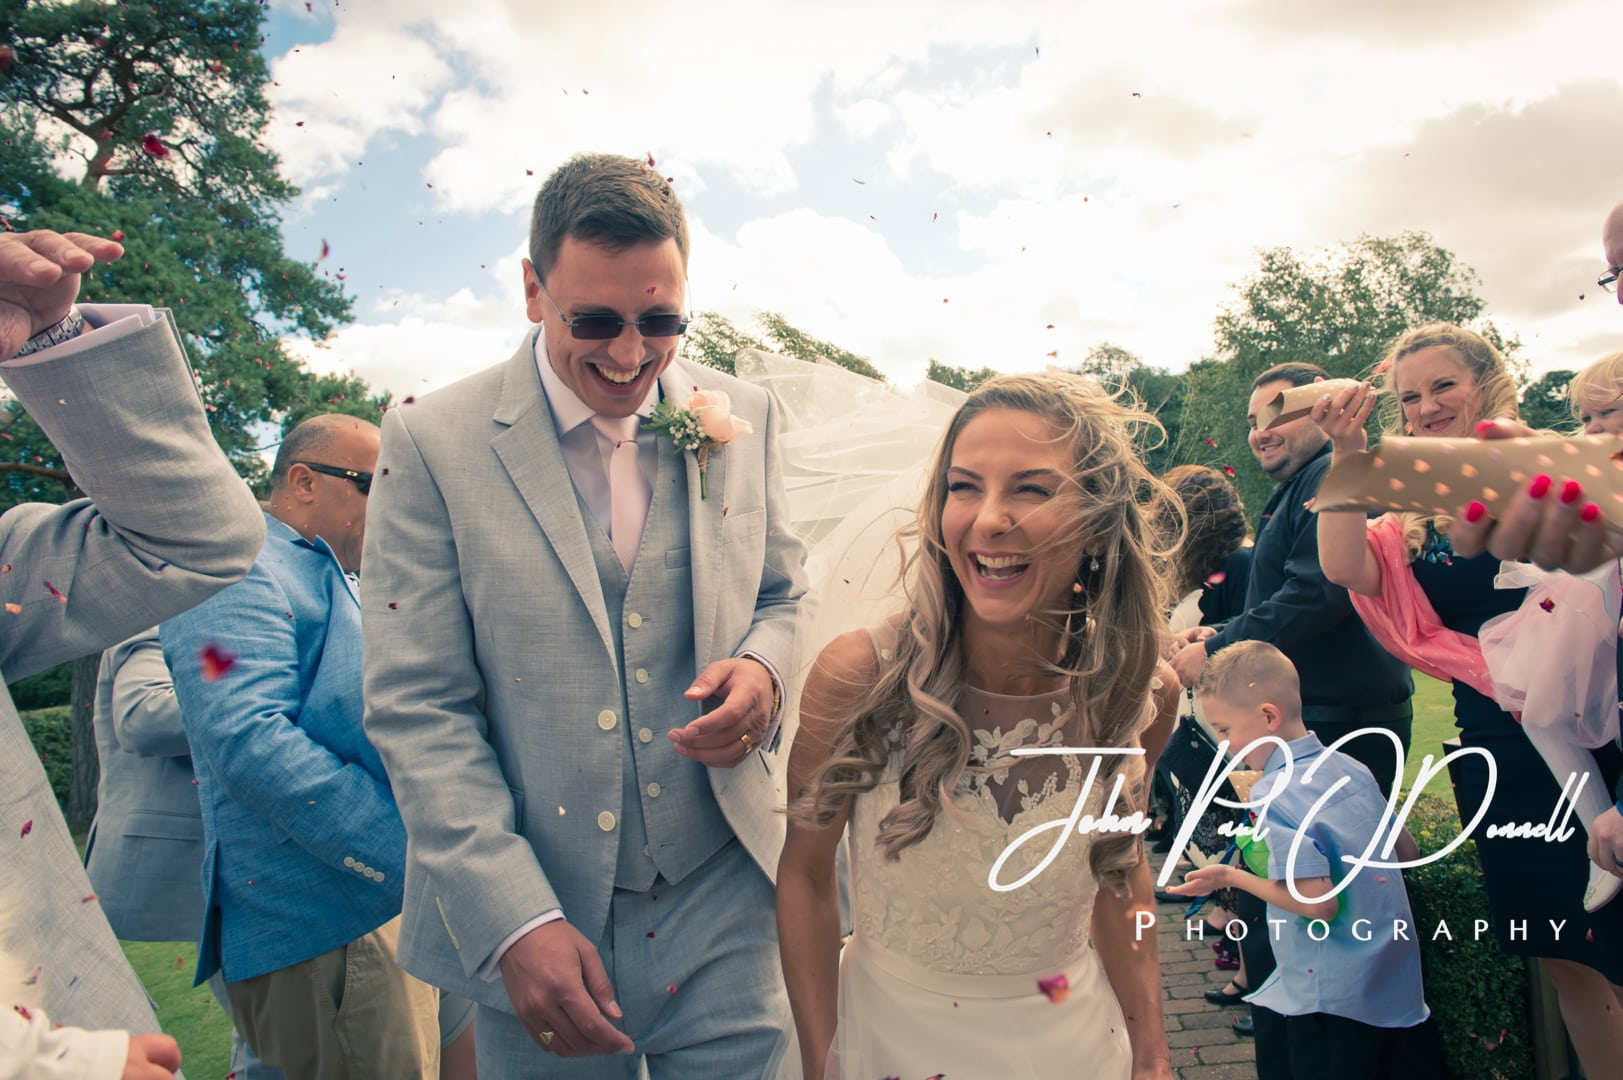 Francesca and Taylors wedding at Tewin Bury Farm